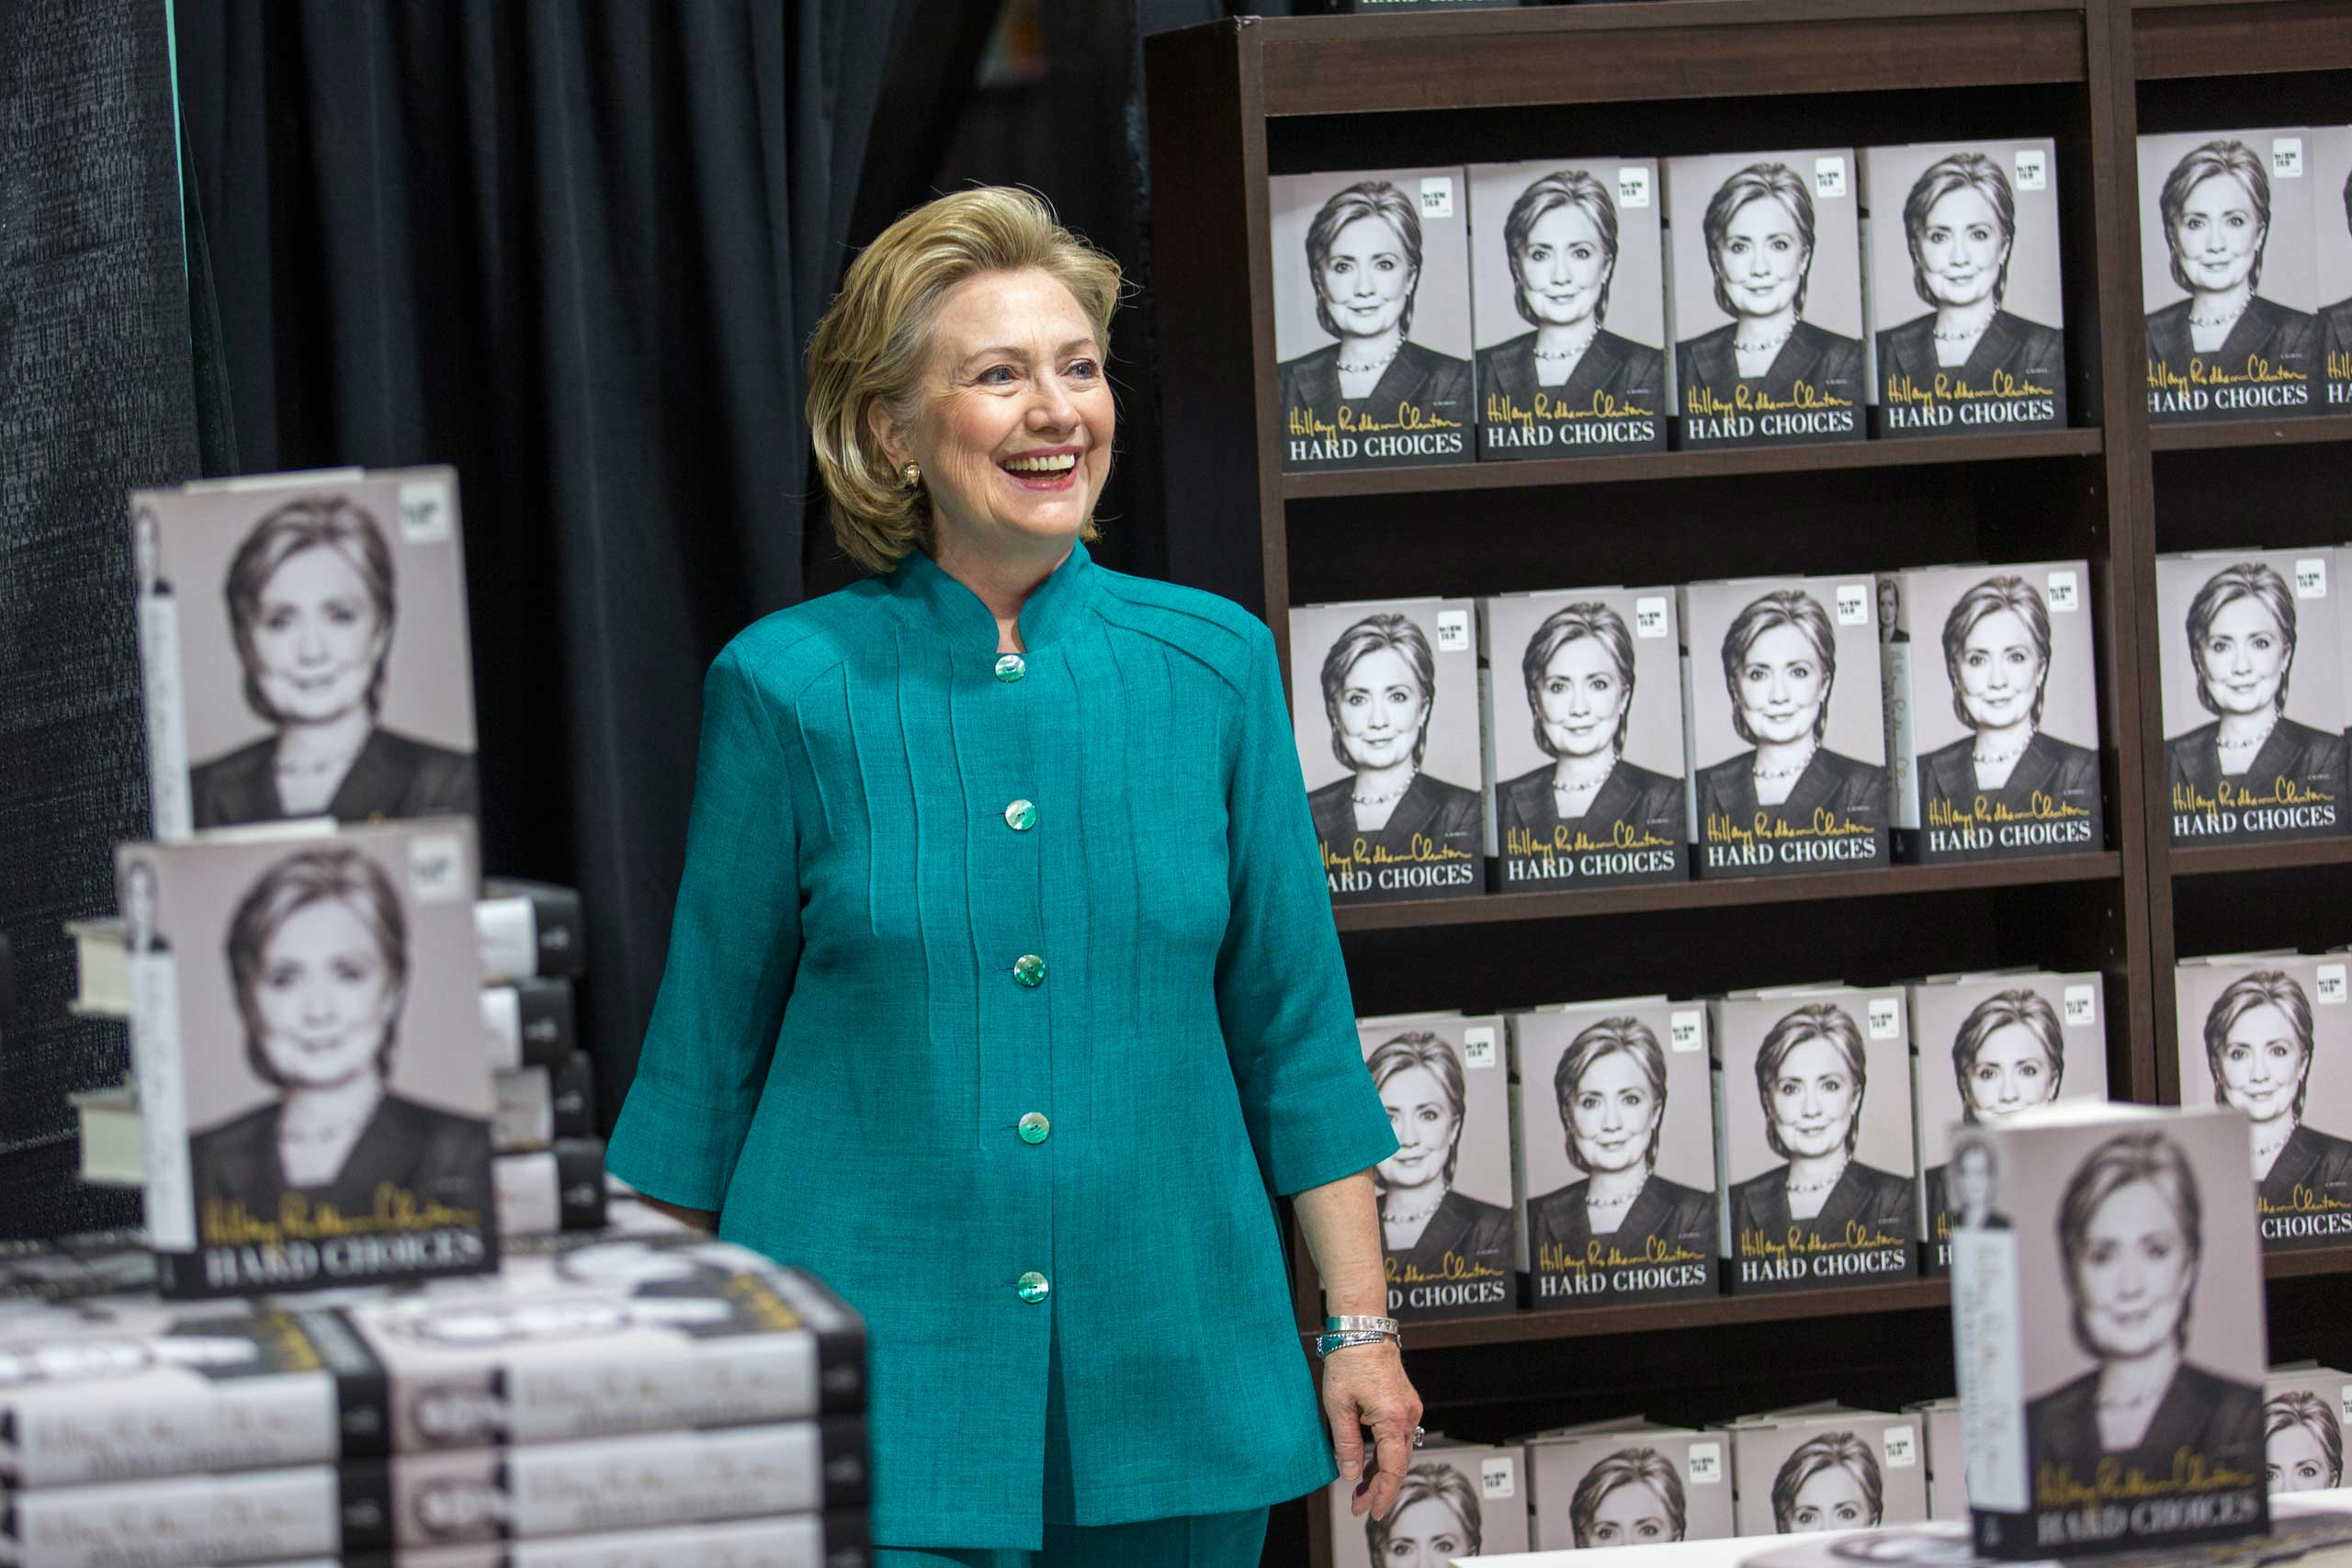 "<b>Author:</b> Clinton attends a signing memoir, ""Hard Choices,"" at a Costco in Arlington, Va., on June 14, 2014."